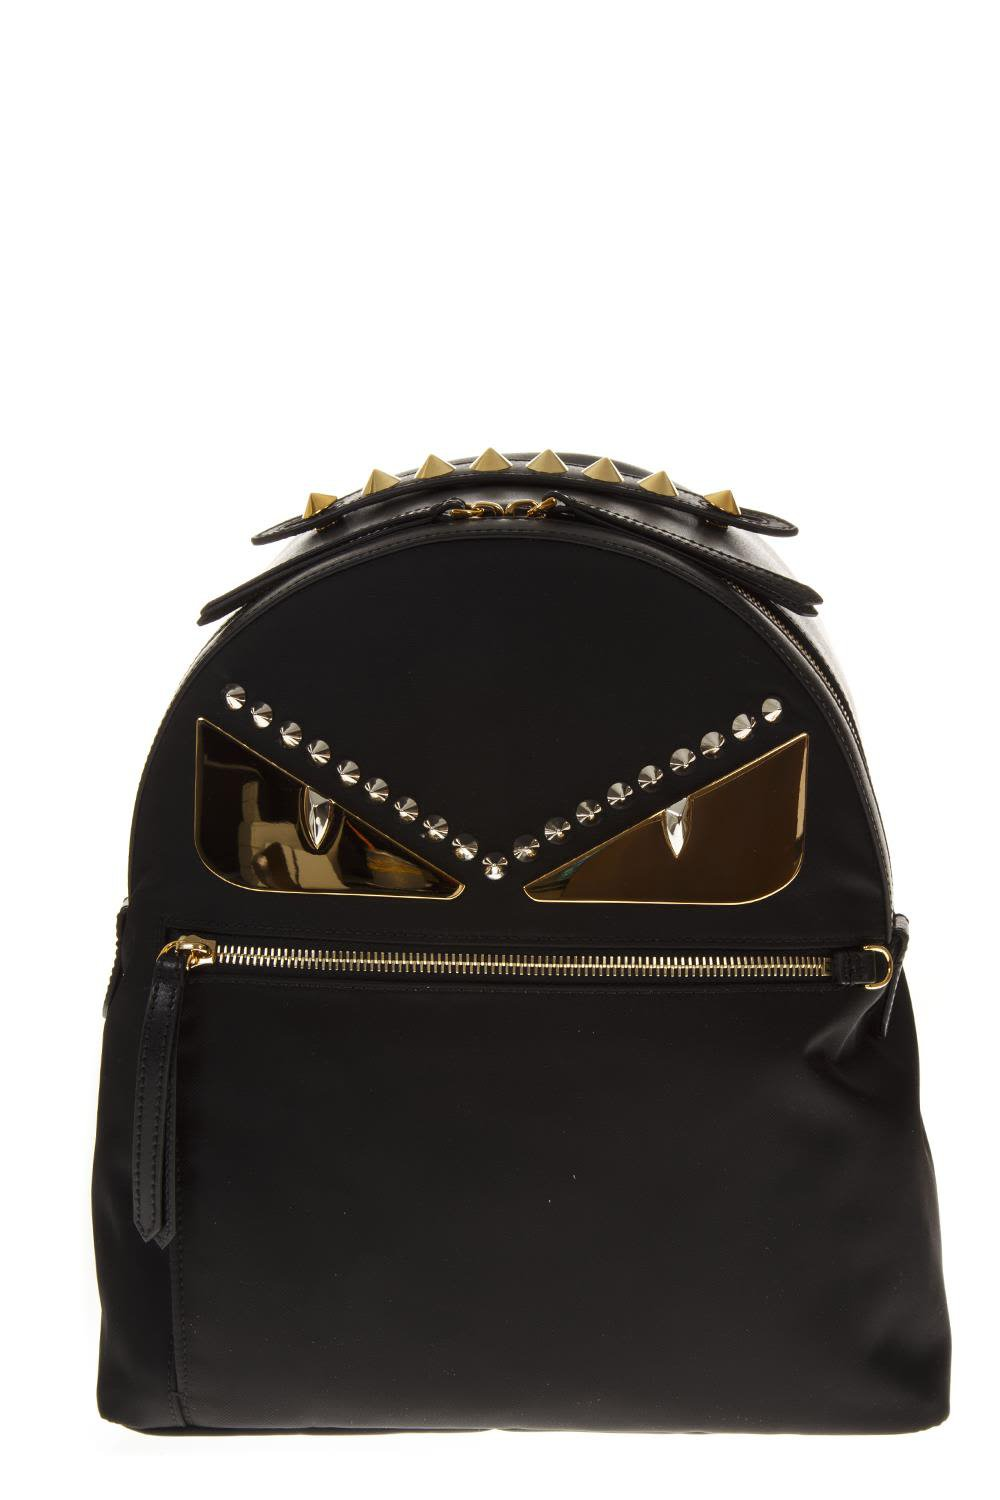 Fendi Black Backpack In Nylon And Leather